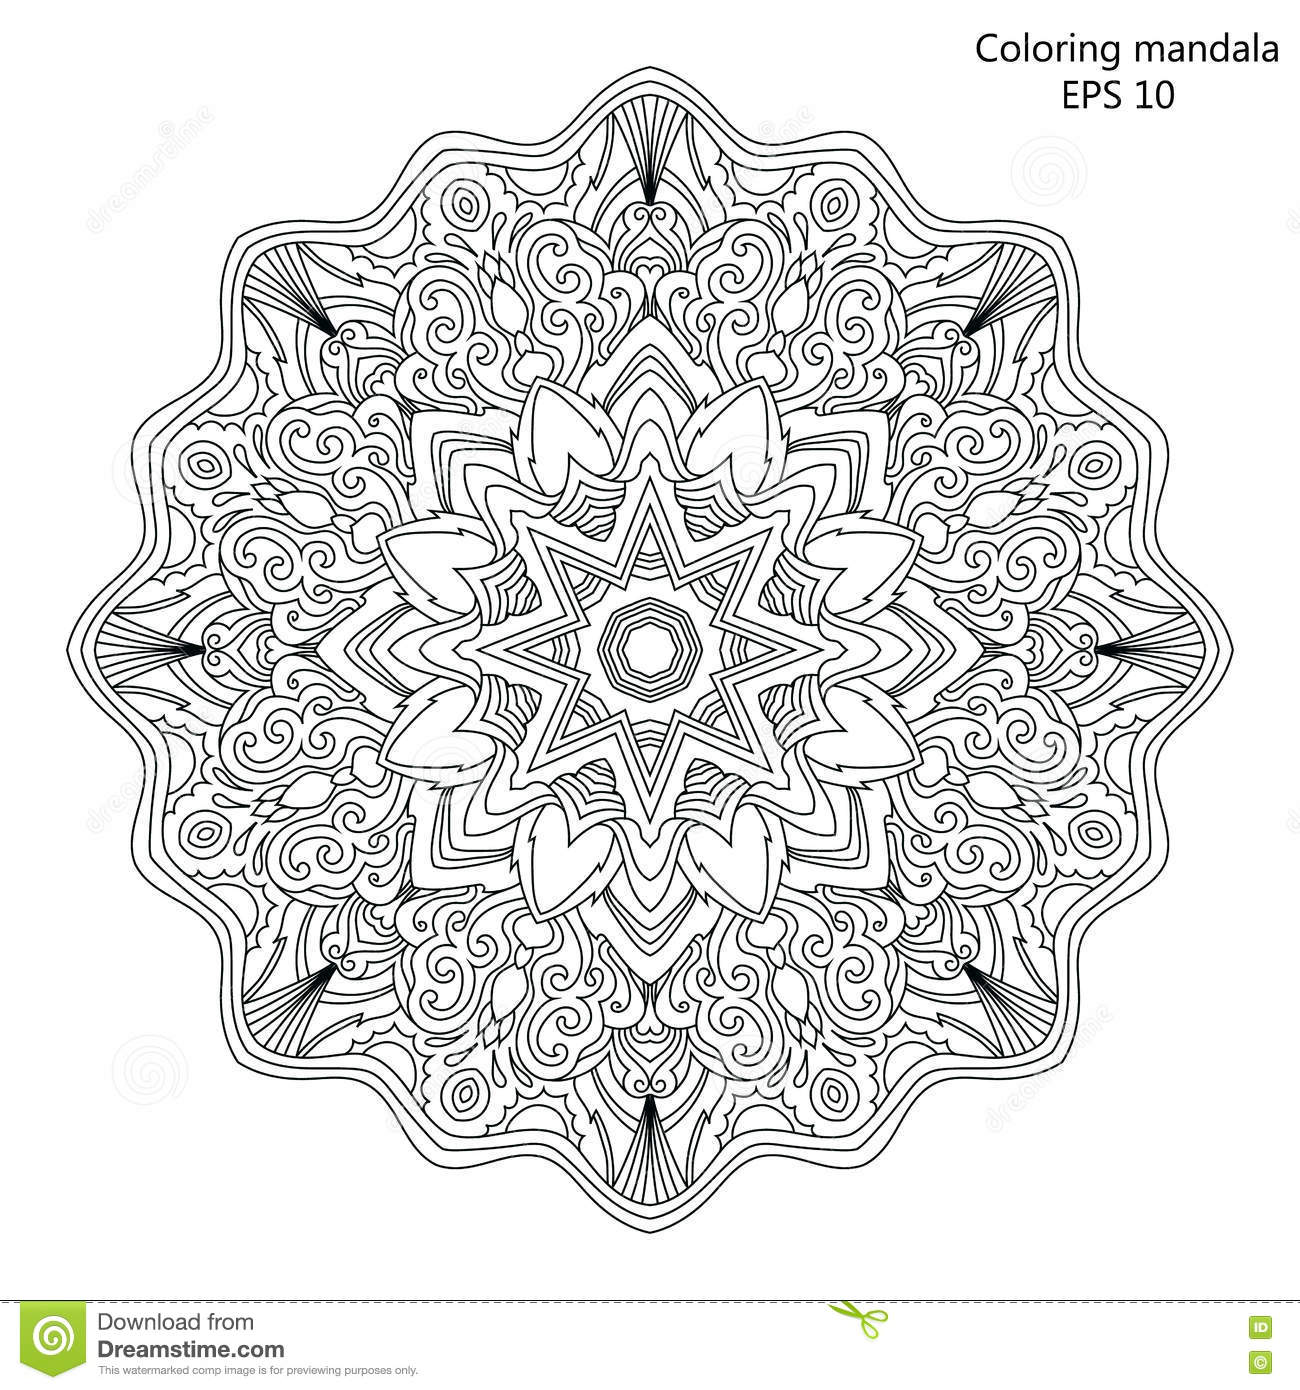 Mandala Coloring Page For Adult Vector Illustration Stock Vector